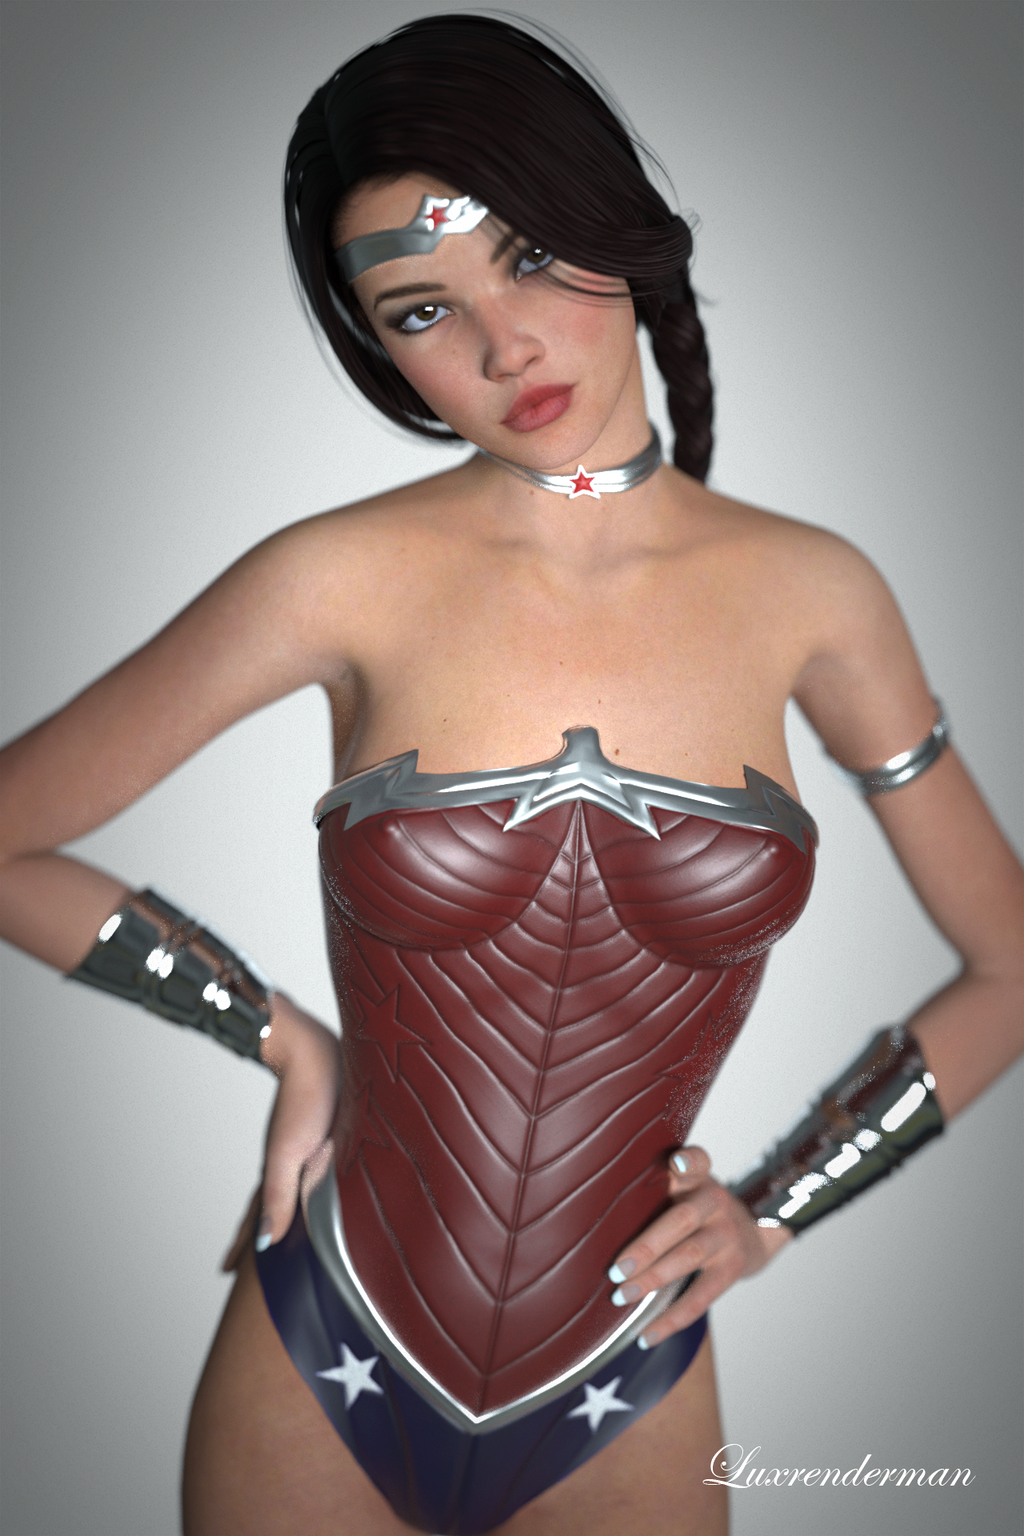 No I Did Not Feel Like Wearing The Lasso By Luxrenderman